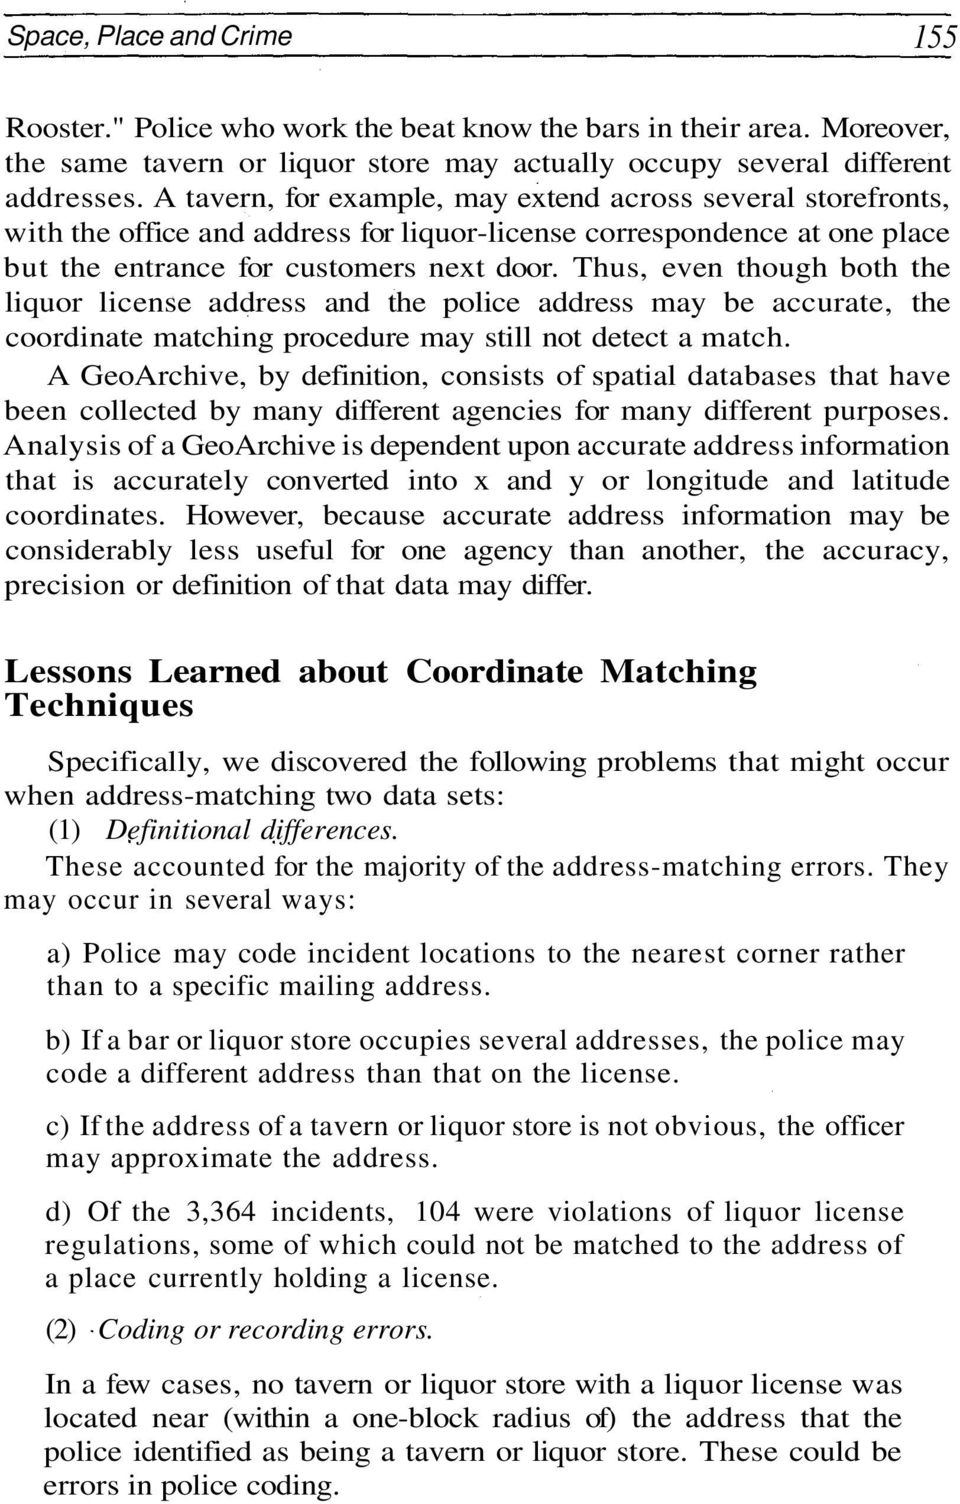 Thus, even though both the liquor license address and the police address may be accurate, the coordinate matching procedure may still not detect a match.